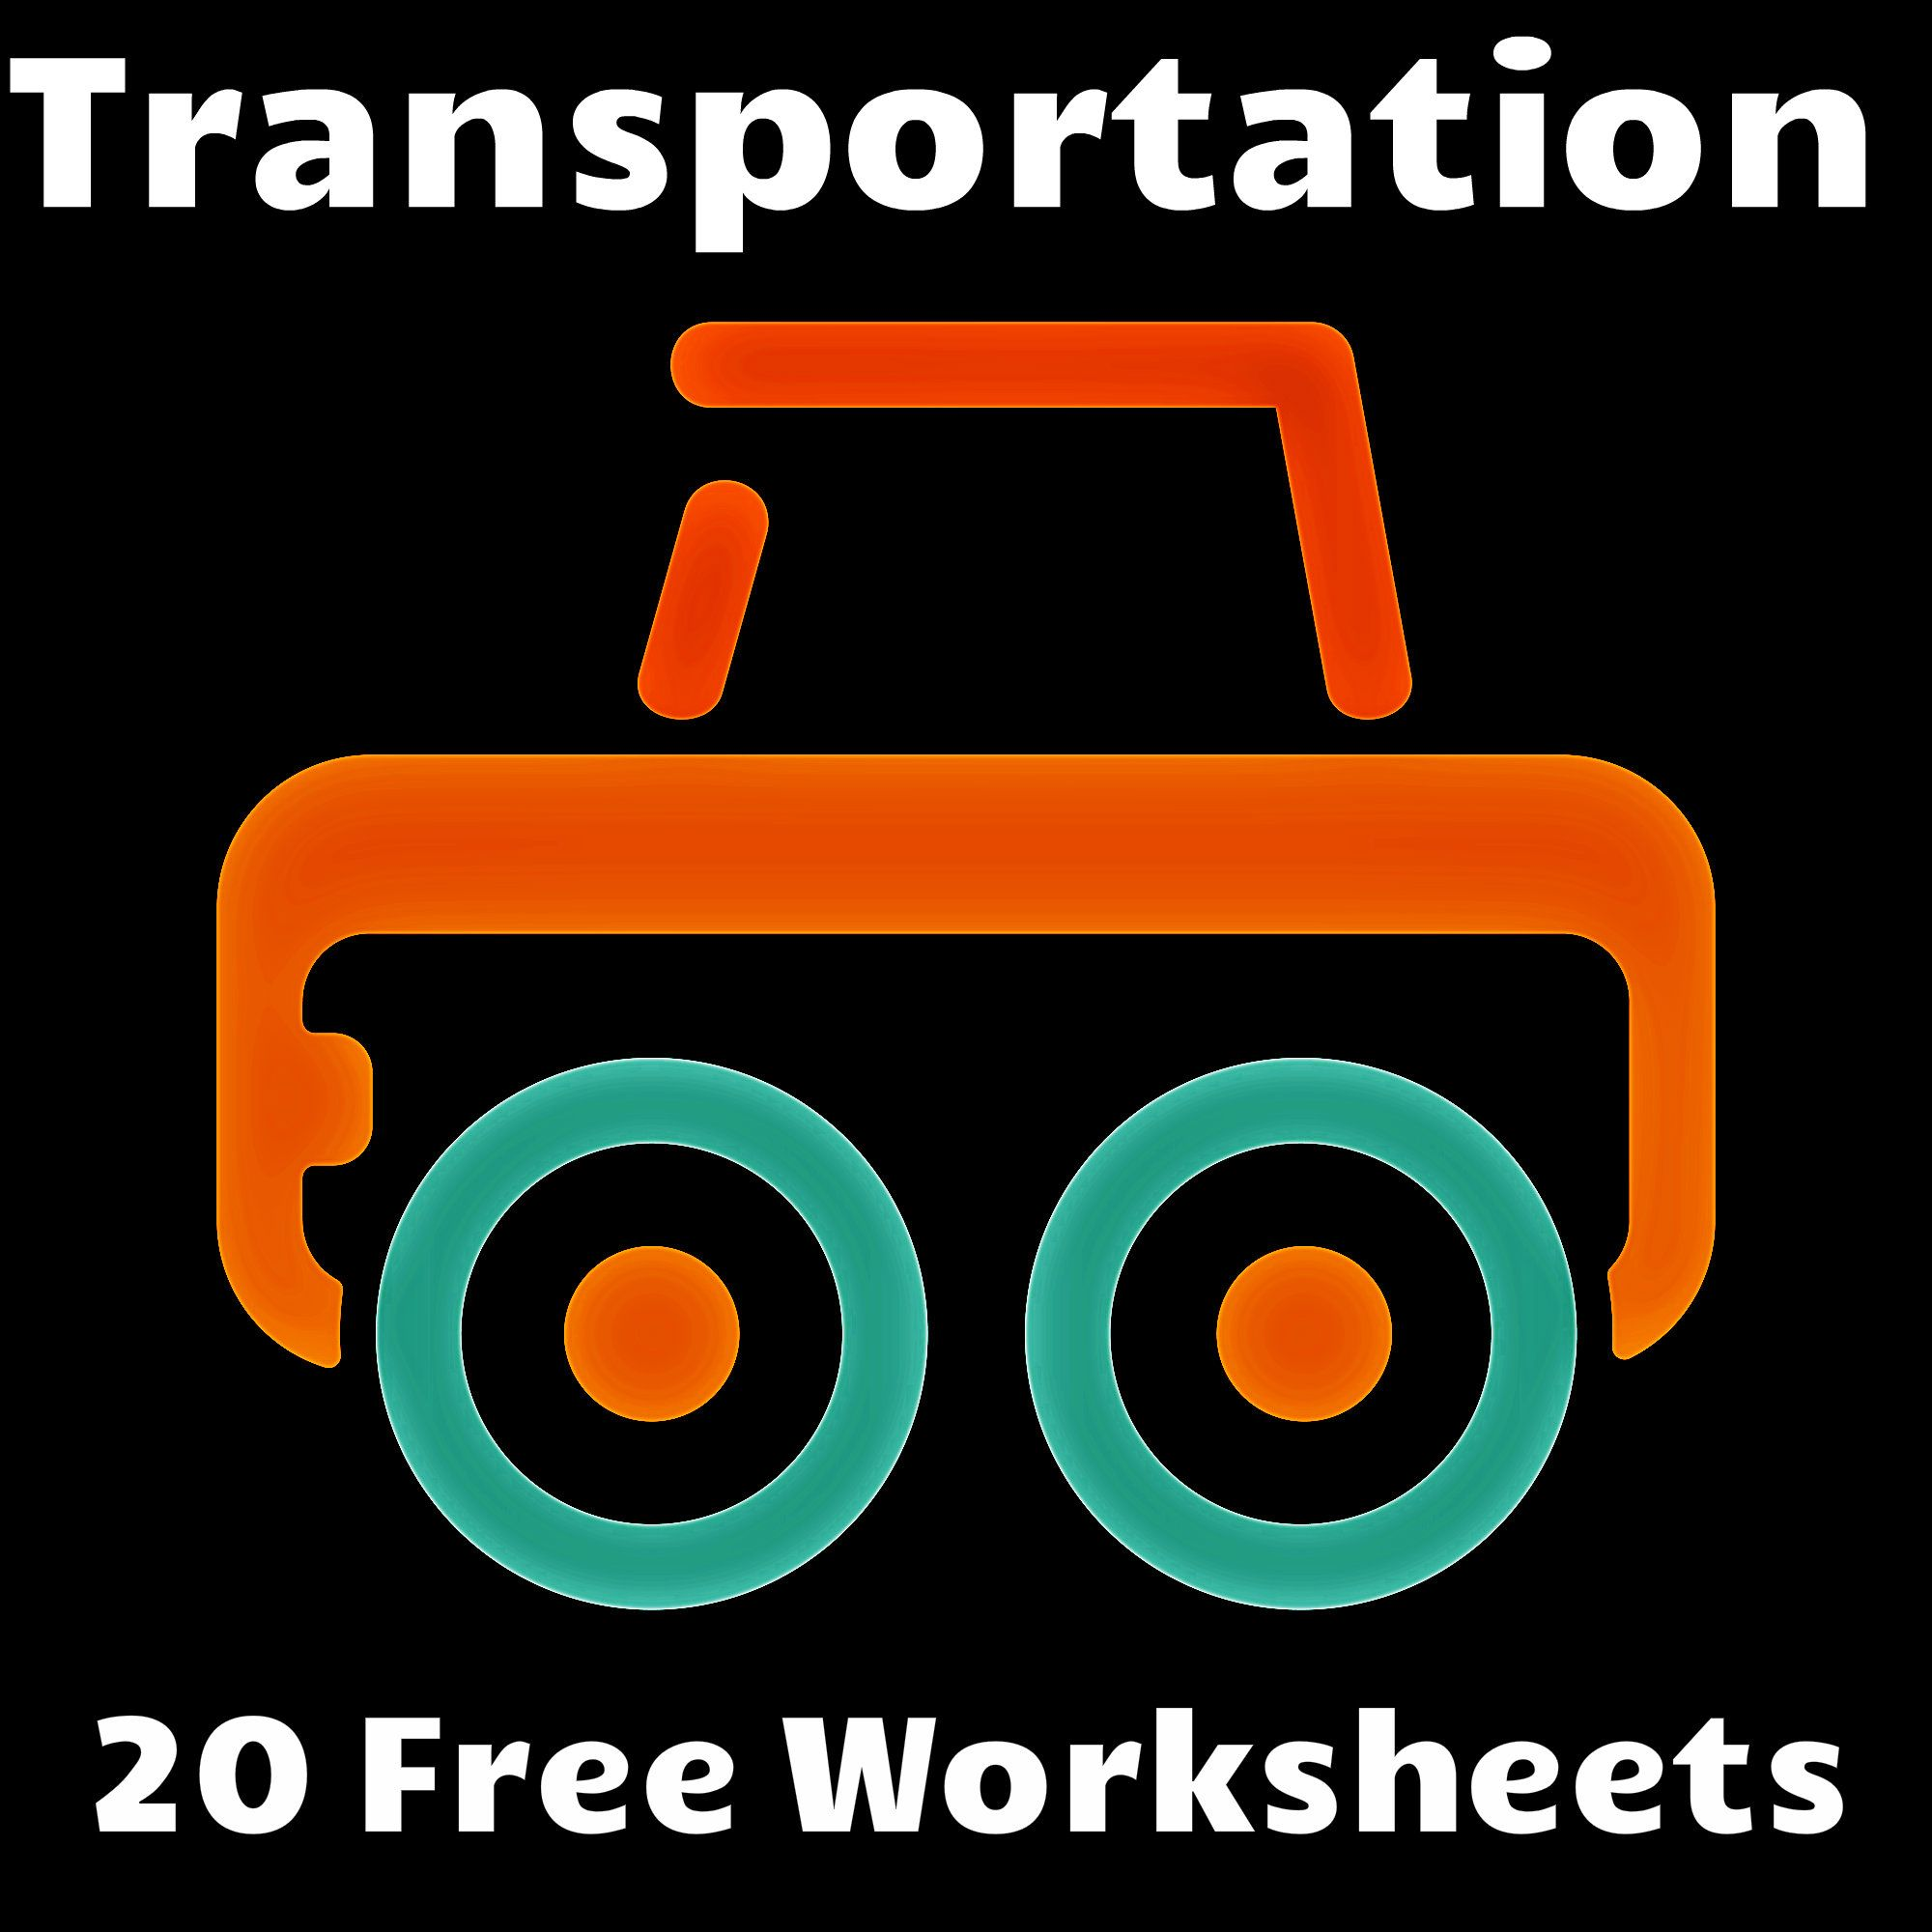 Twenty Free Transportation Worksheets To Teach Children